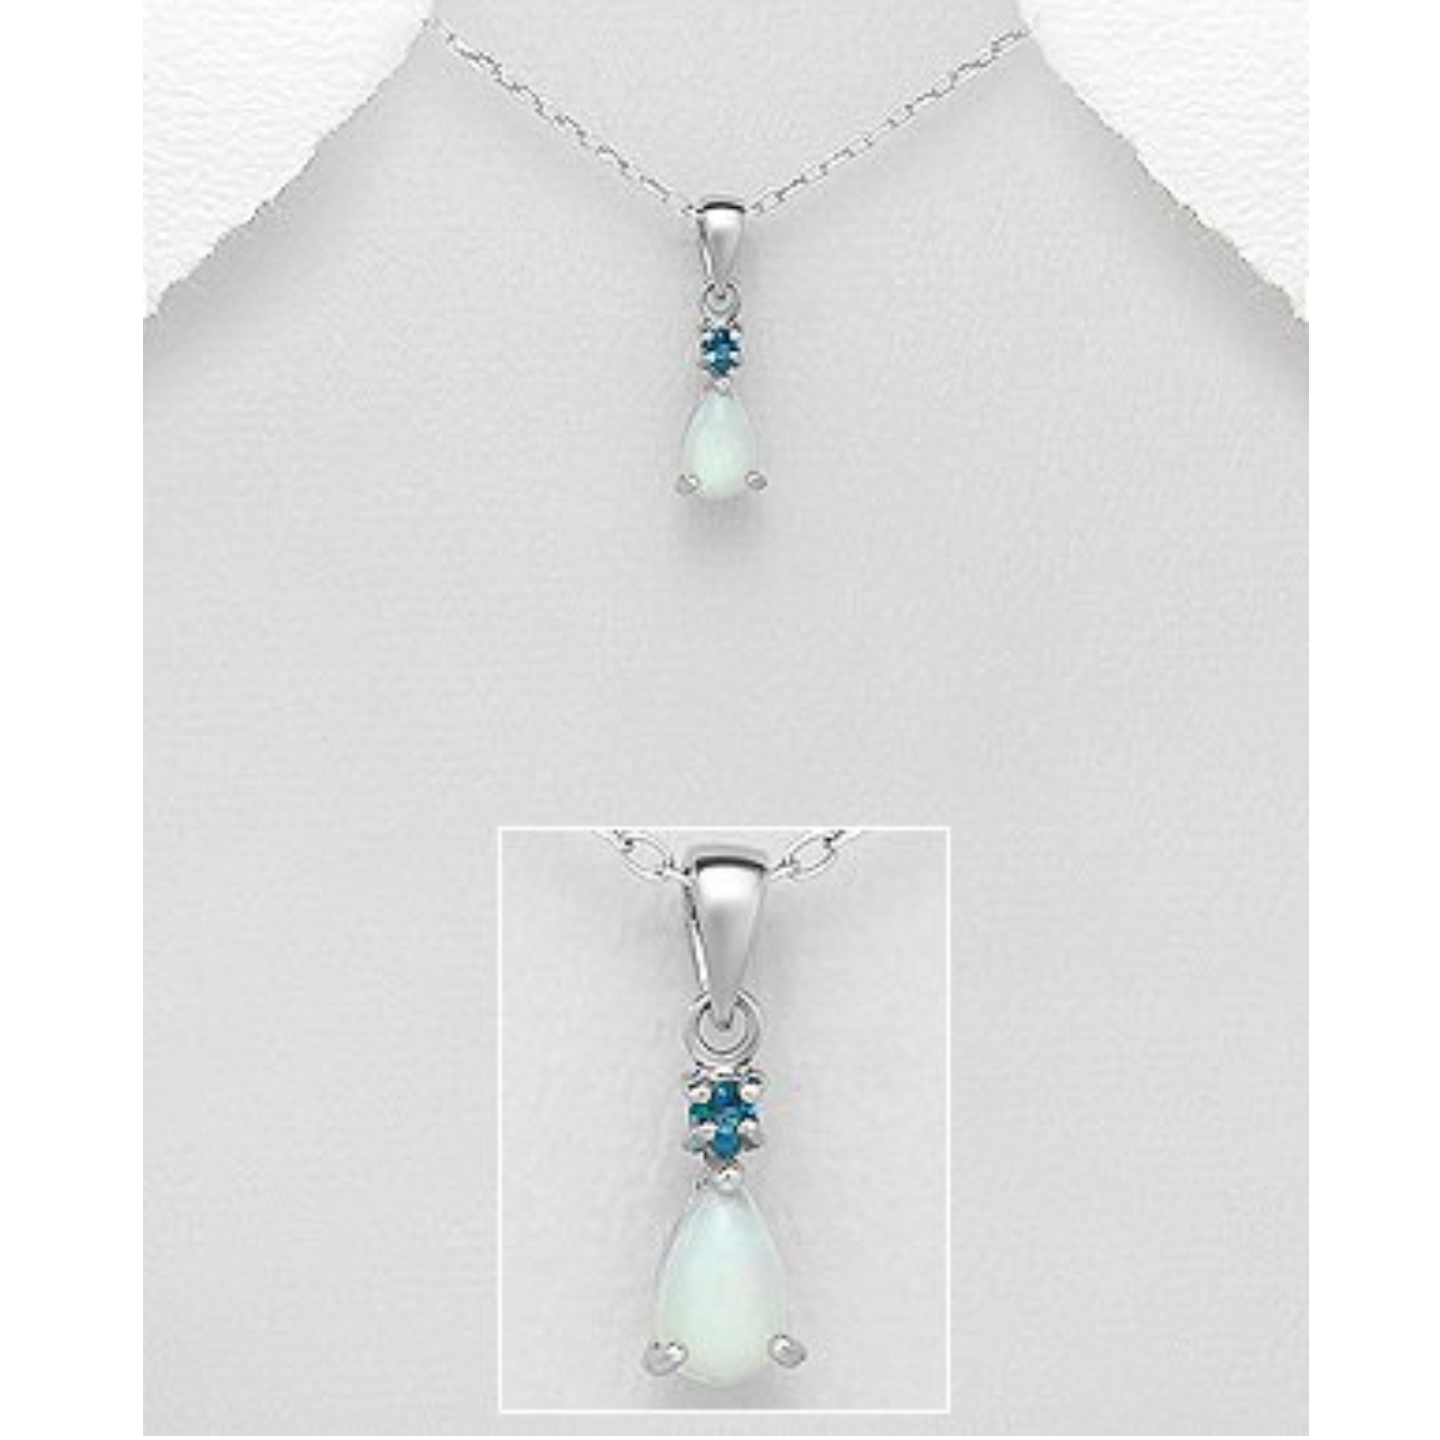 Preciada *Opal & London Blue Pendant